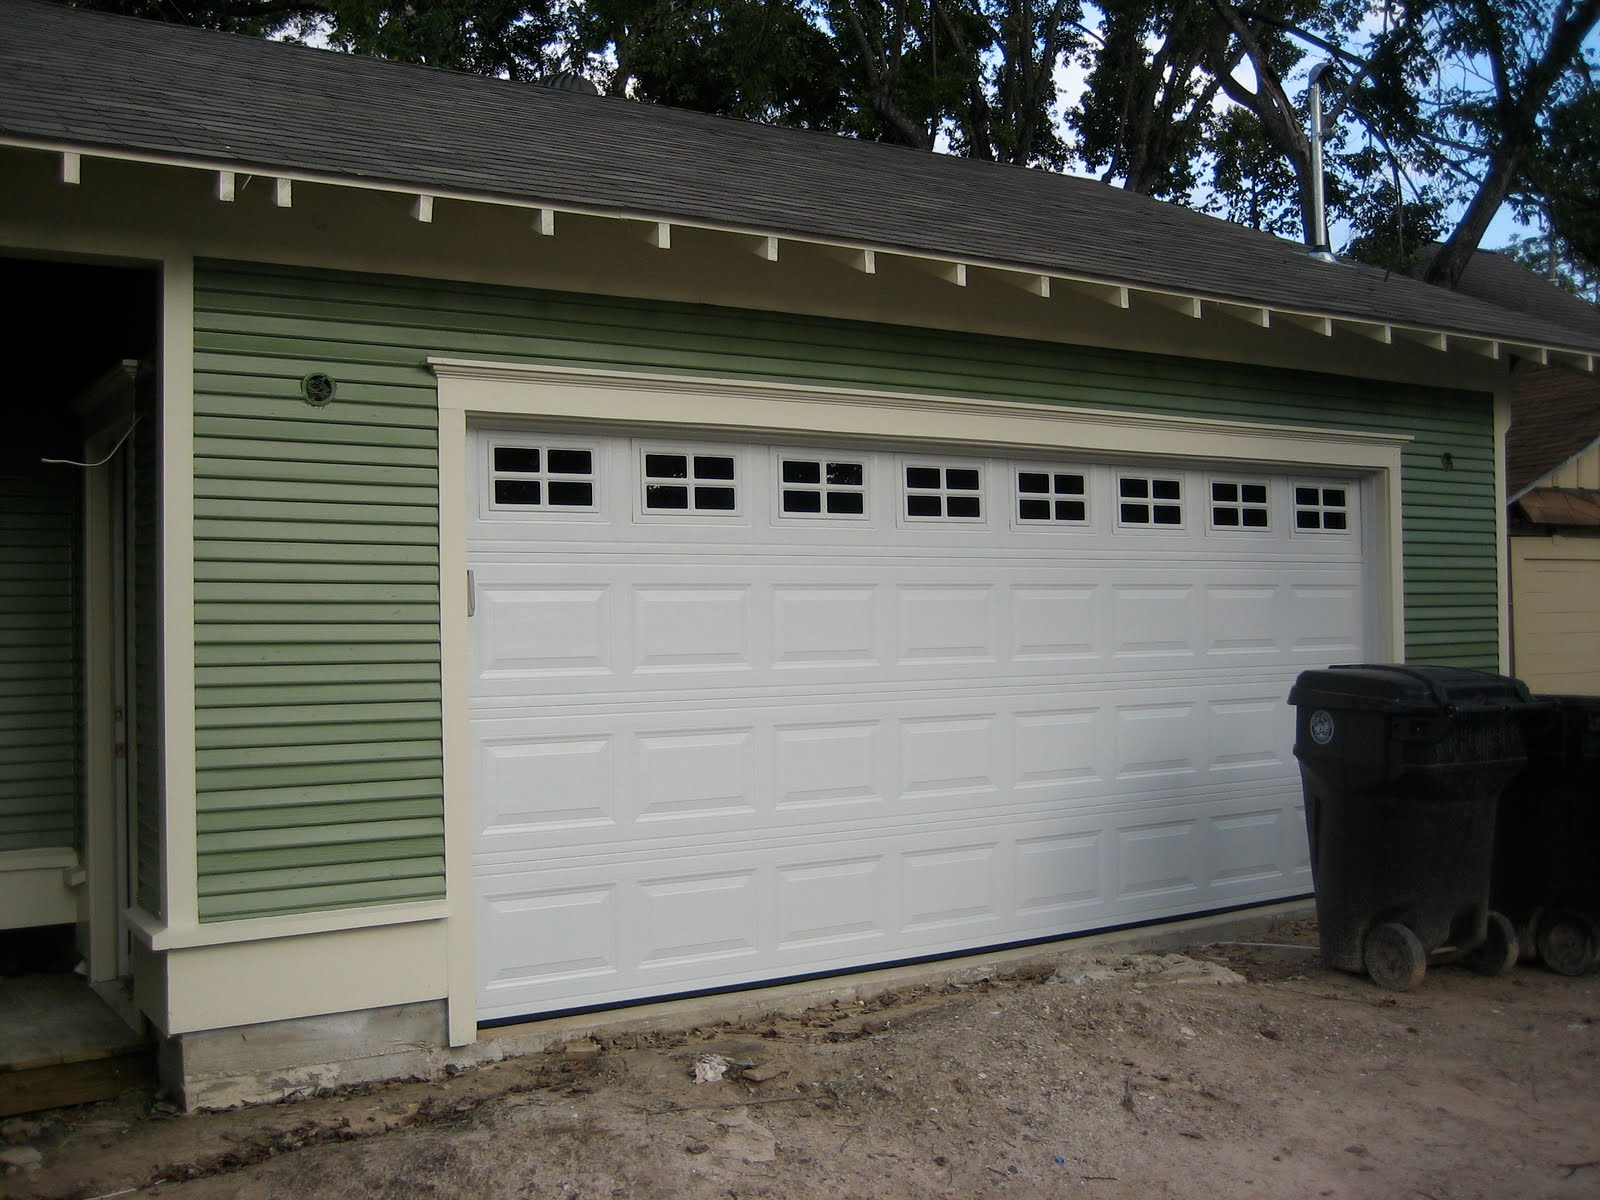 High Quality Today, The Accent Paint Was Completed Around All The Windows And The Garage  Door Was Added. The Garage Door Will Eventually Be The Same Color As The  Trim ...